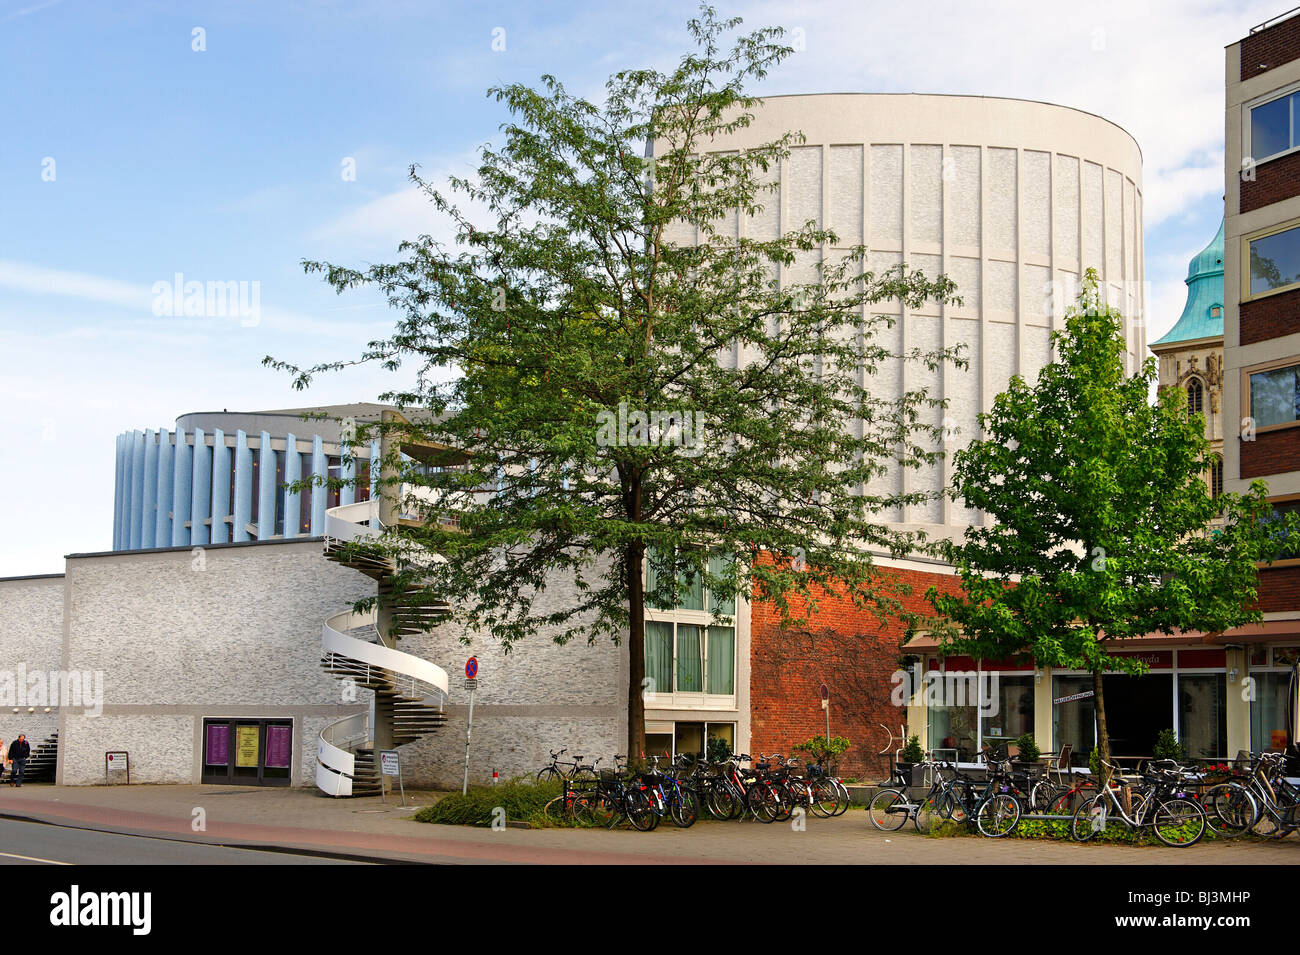 Le théâtre local de Muenster, Germany, Europe Photo Stock